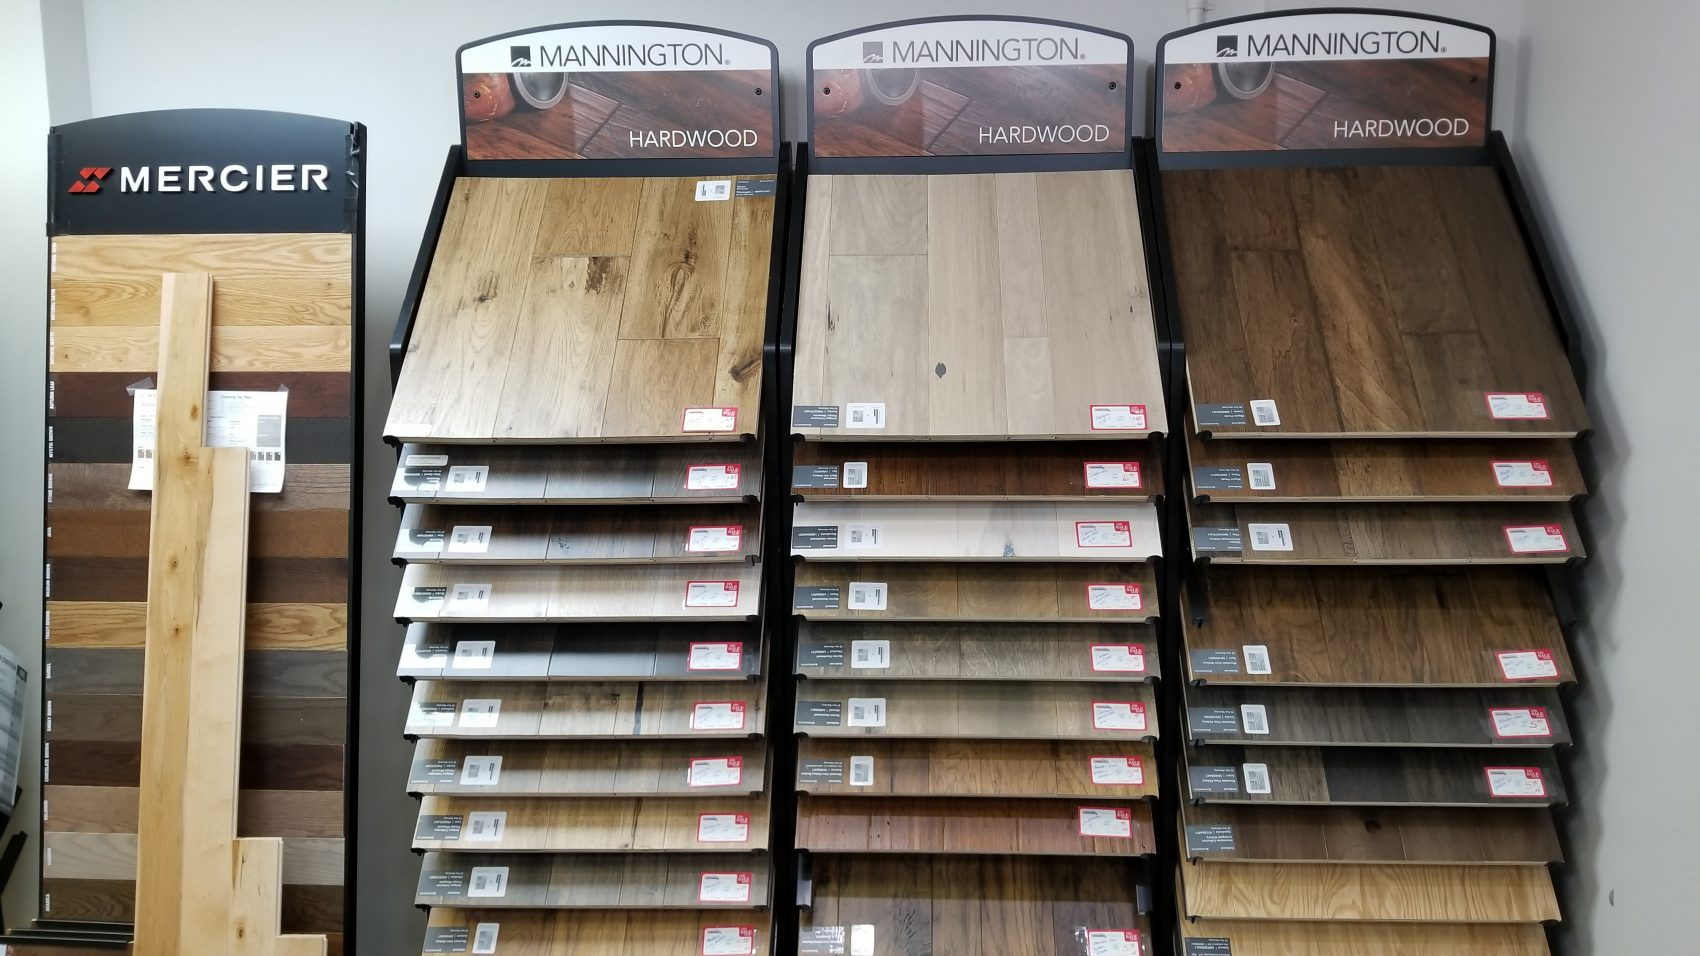 Mannington Hardwood Flooring Display Bodamers Carpets